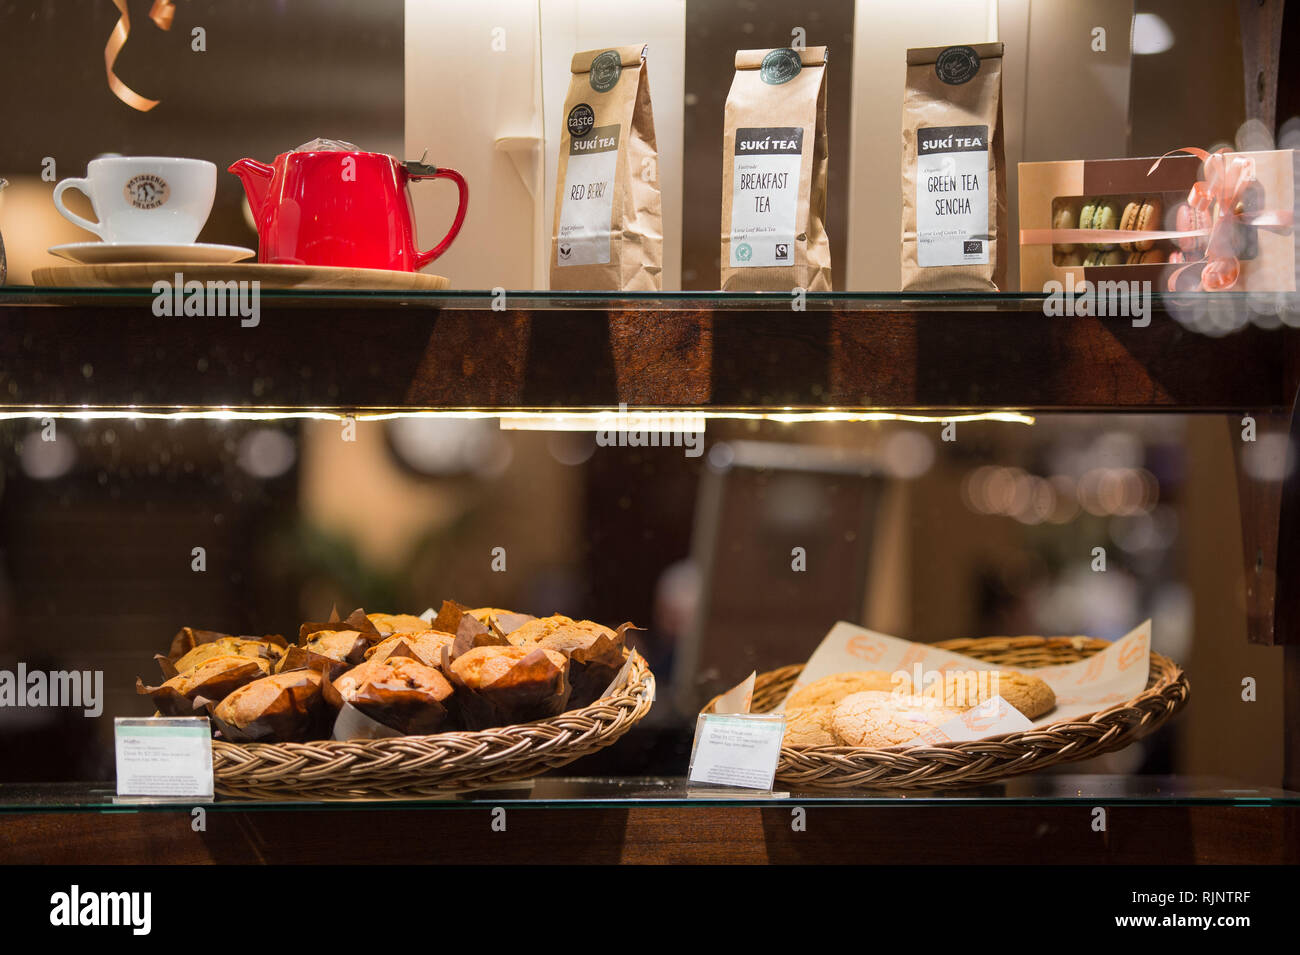 Glasgow, UK. 25 January 2019. Patisserie Valerie is a chain of cafés that operates in the United Kingdom. The chain specialises in hand-made cakes, an Stock Photo